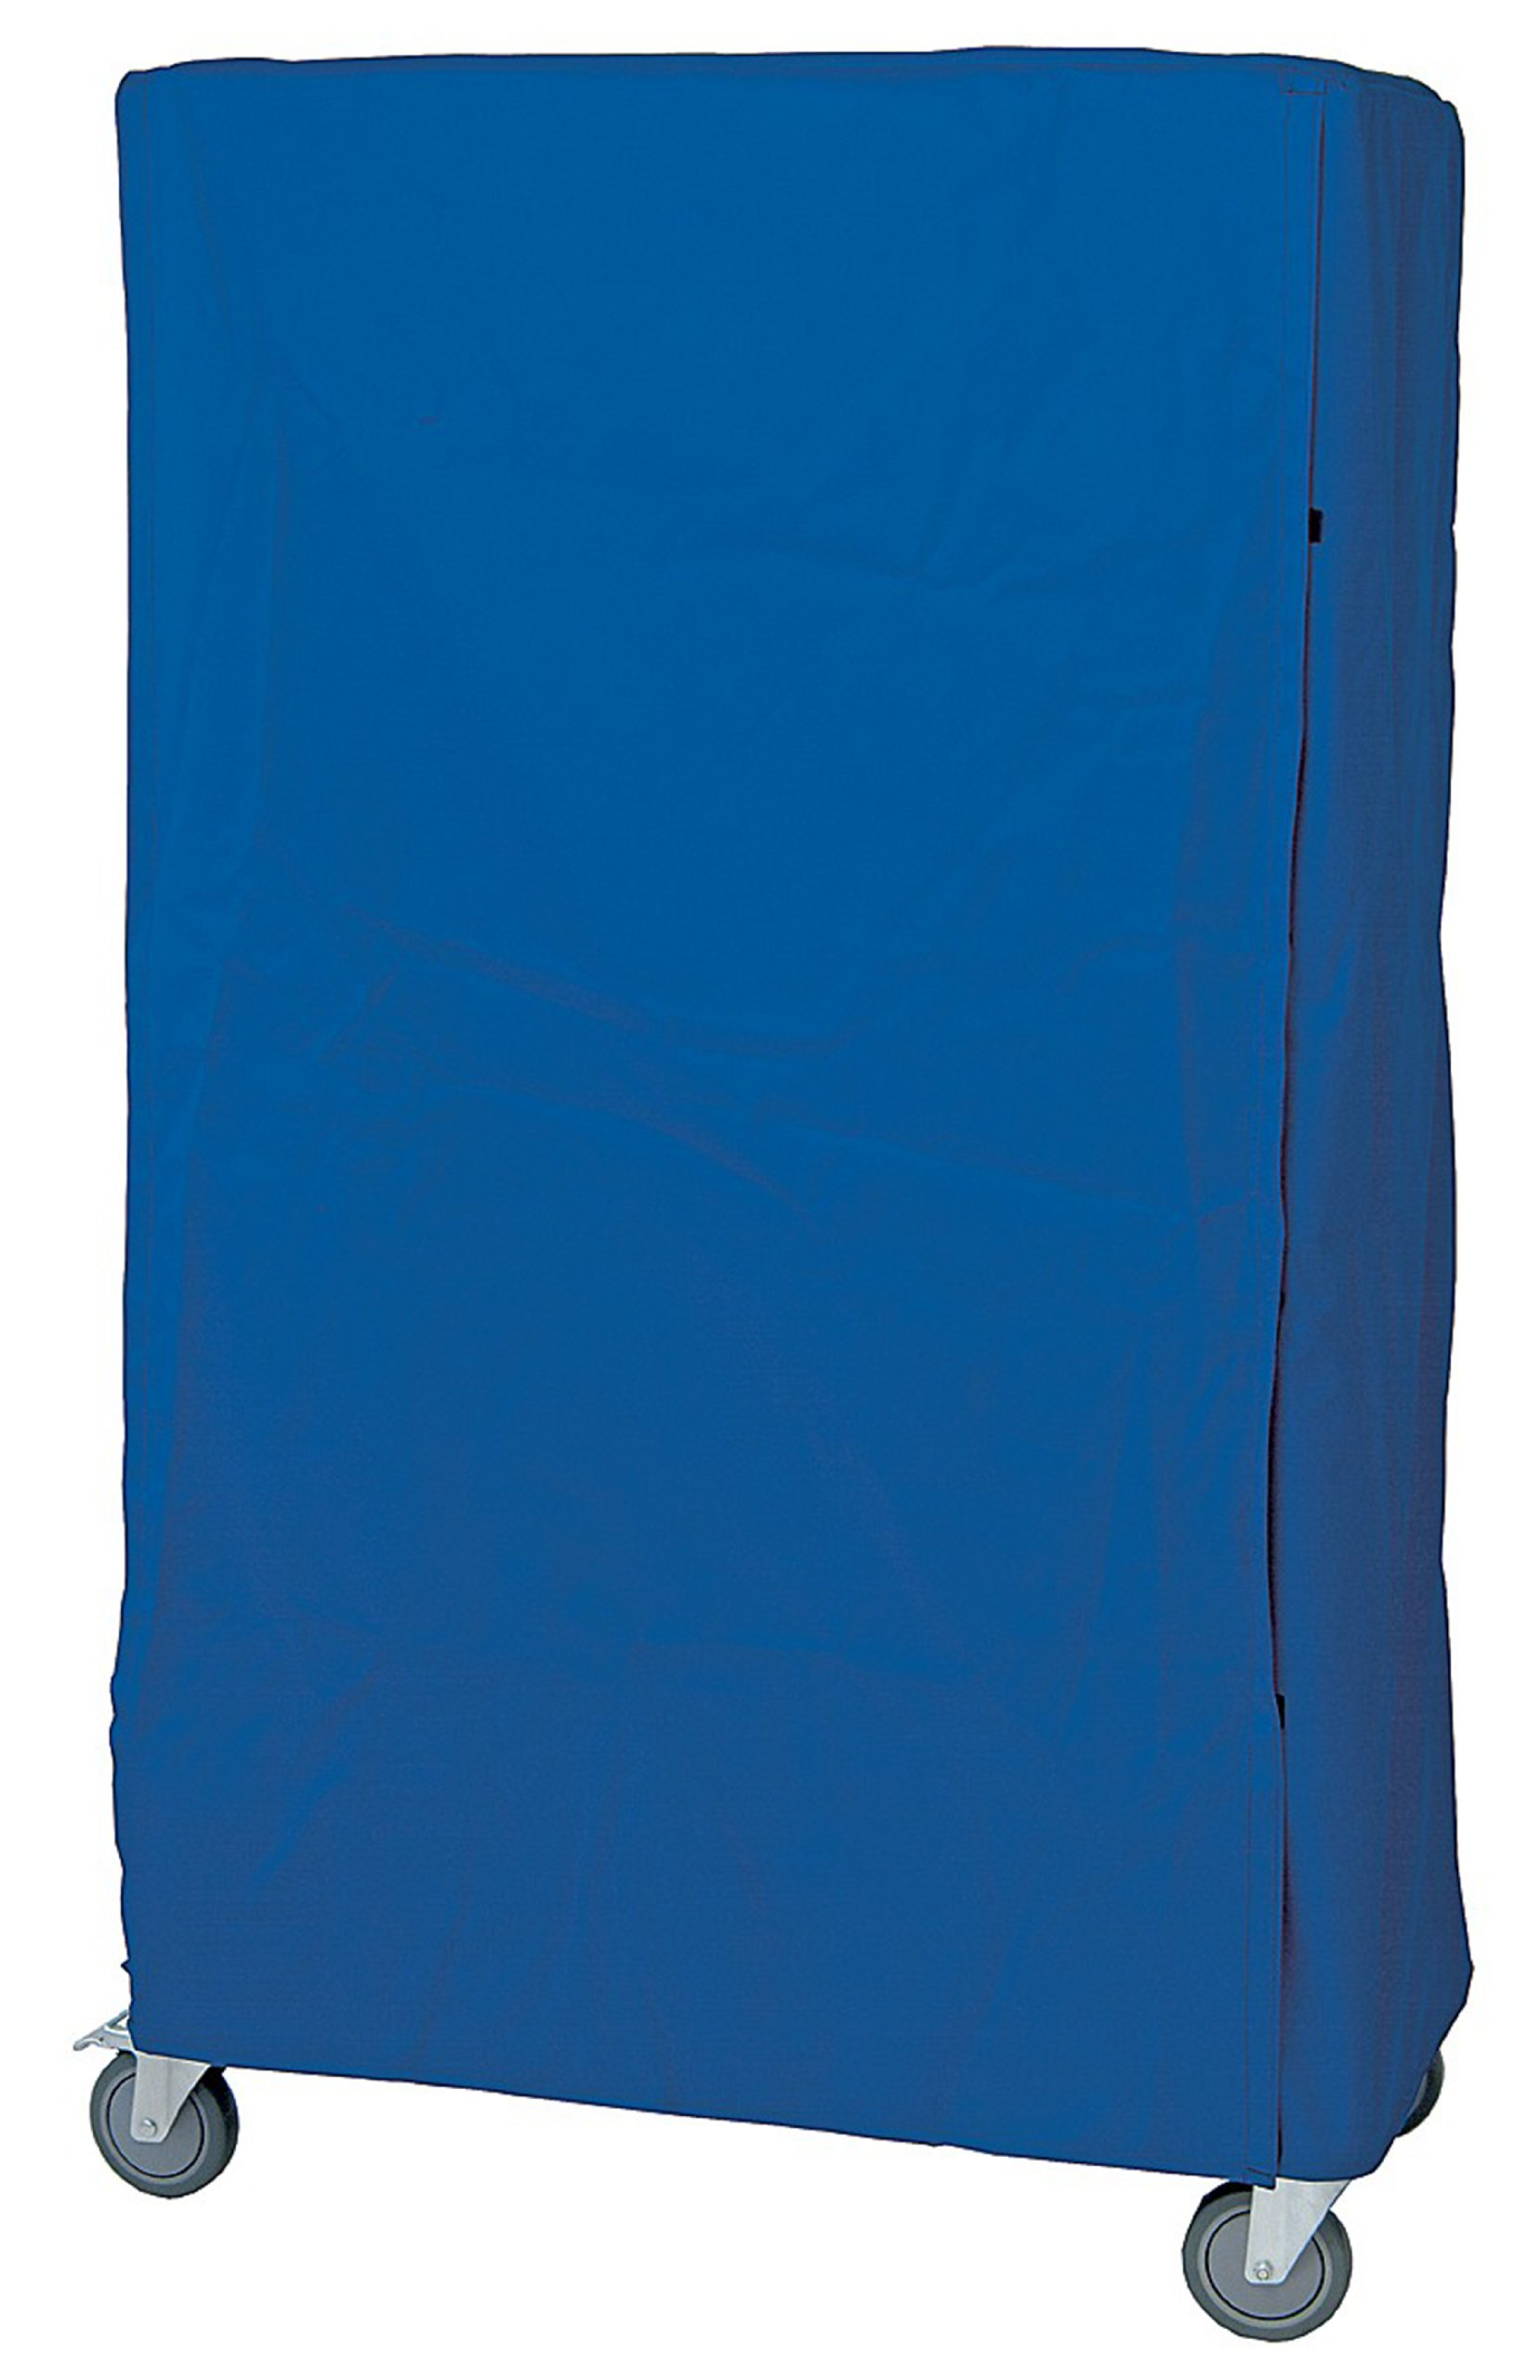 Quantum Storage Systems CC187263BNZ Wire Cart Cover with Zipper Flap, 400 Denier Nylon, Blue, 18'' Width x 72'' Length x 63'' Height